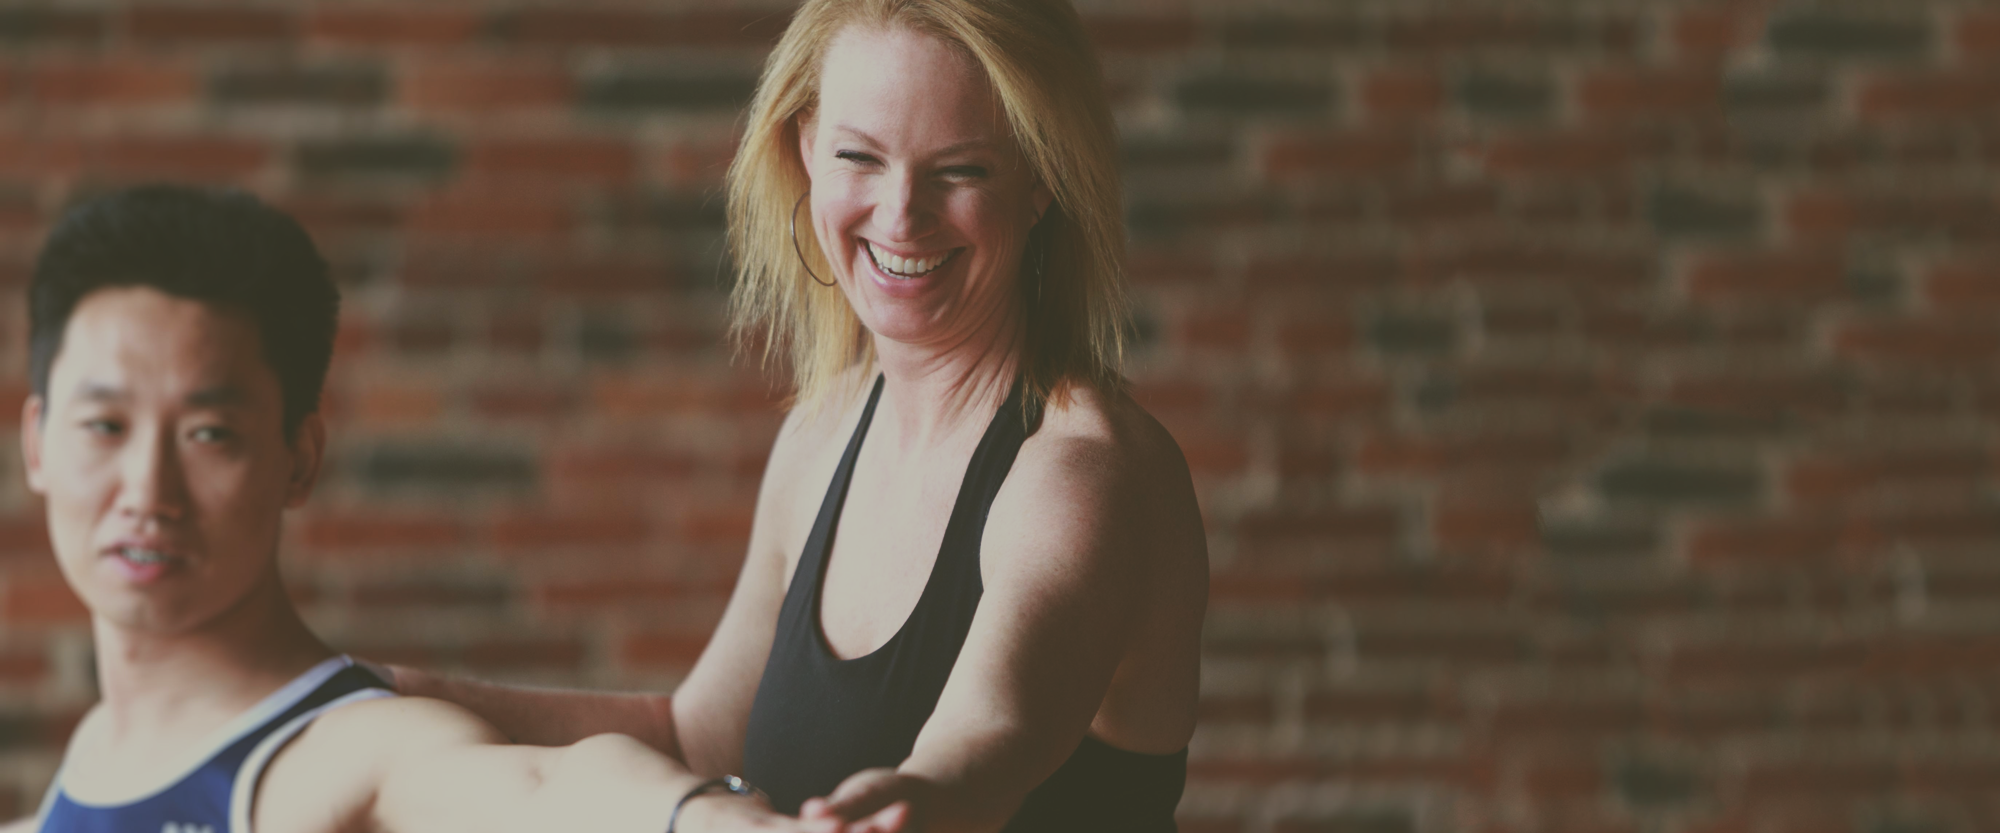 Connectwith your breath, body and mind